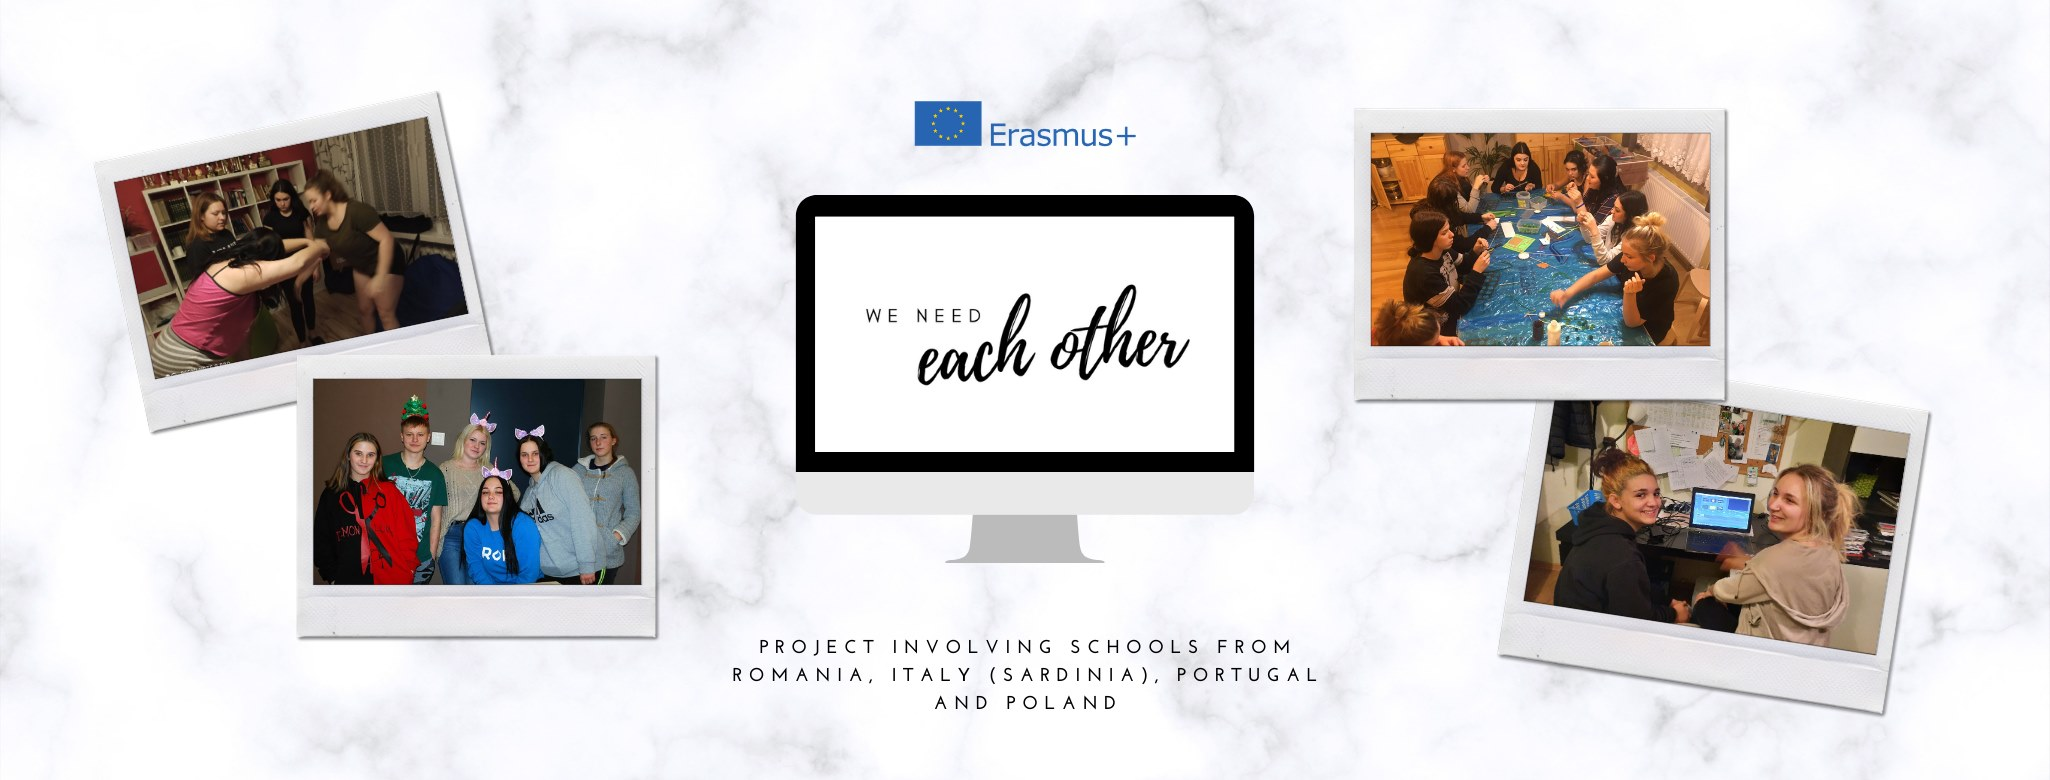 wneo-erasmus.pl –  We Need each other